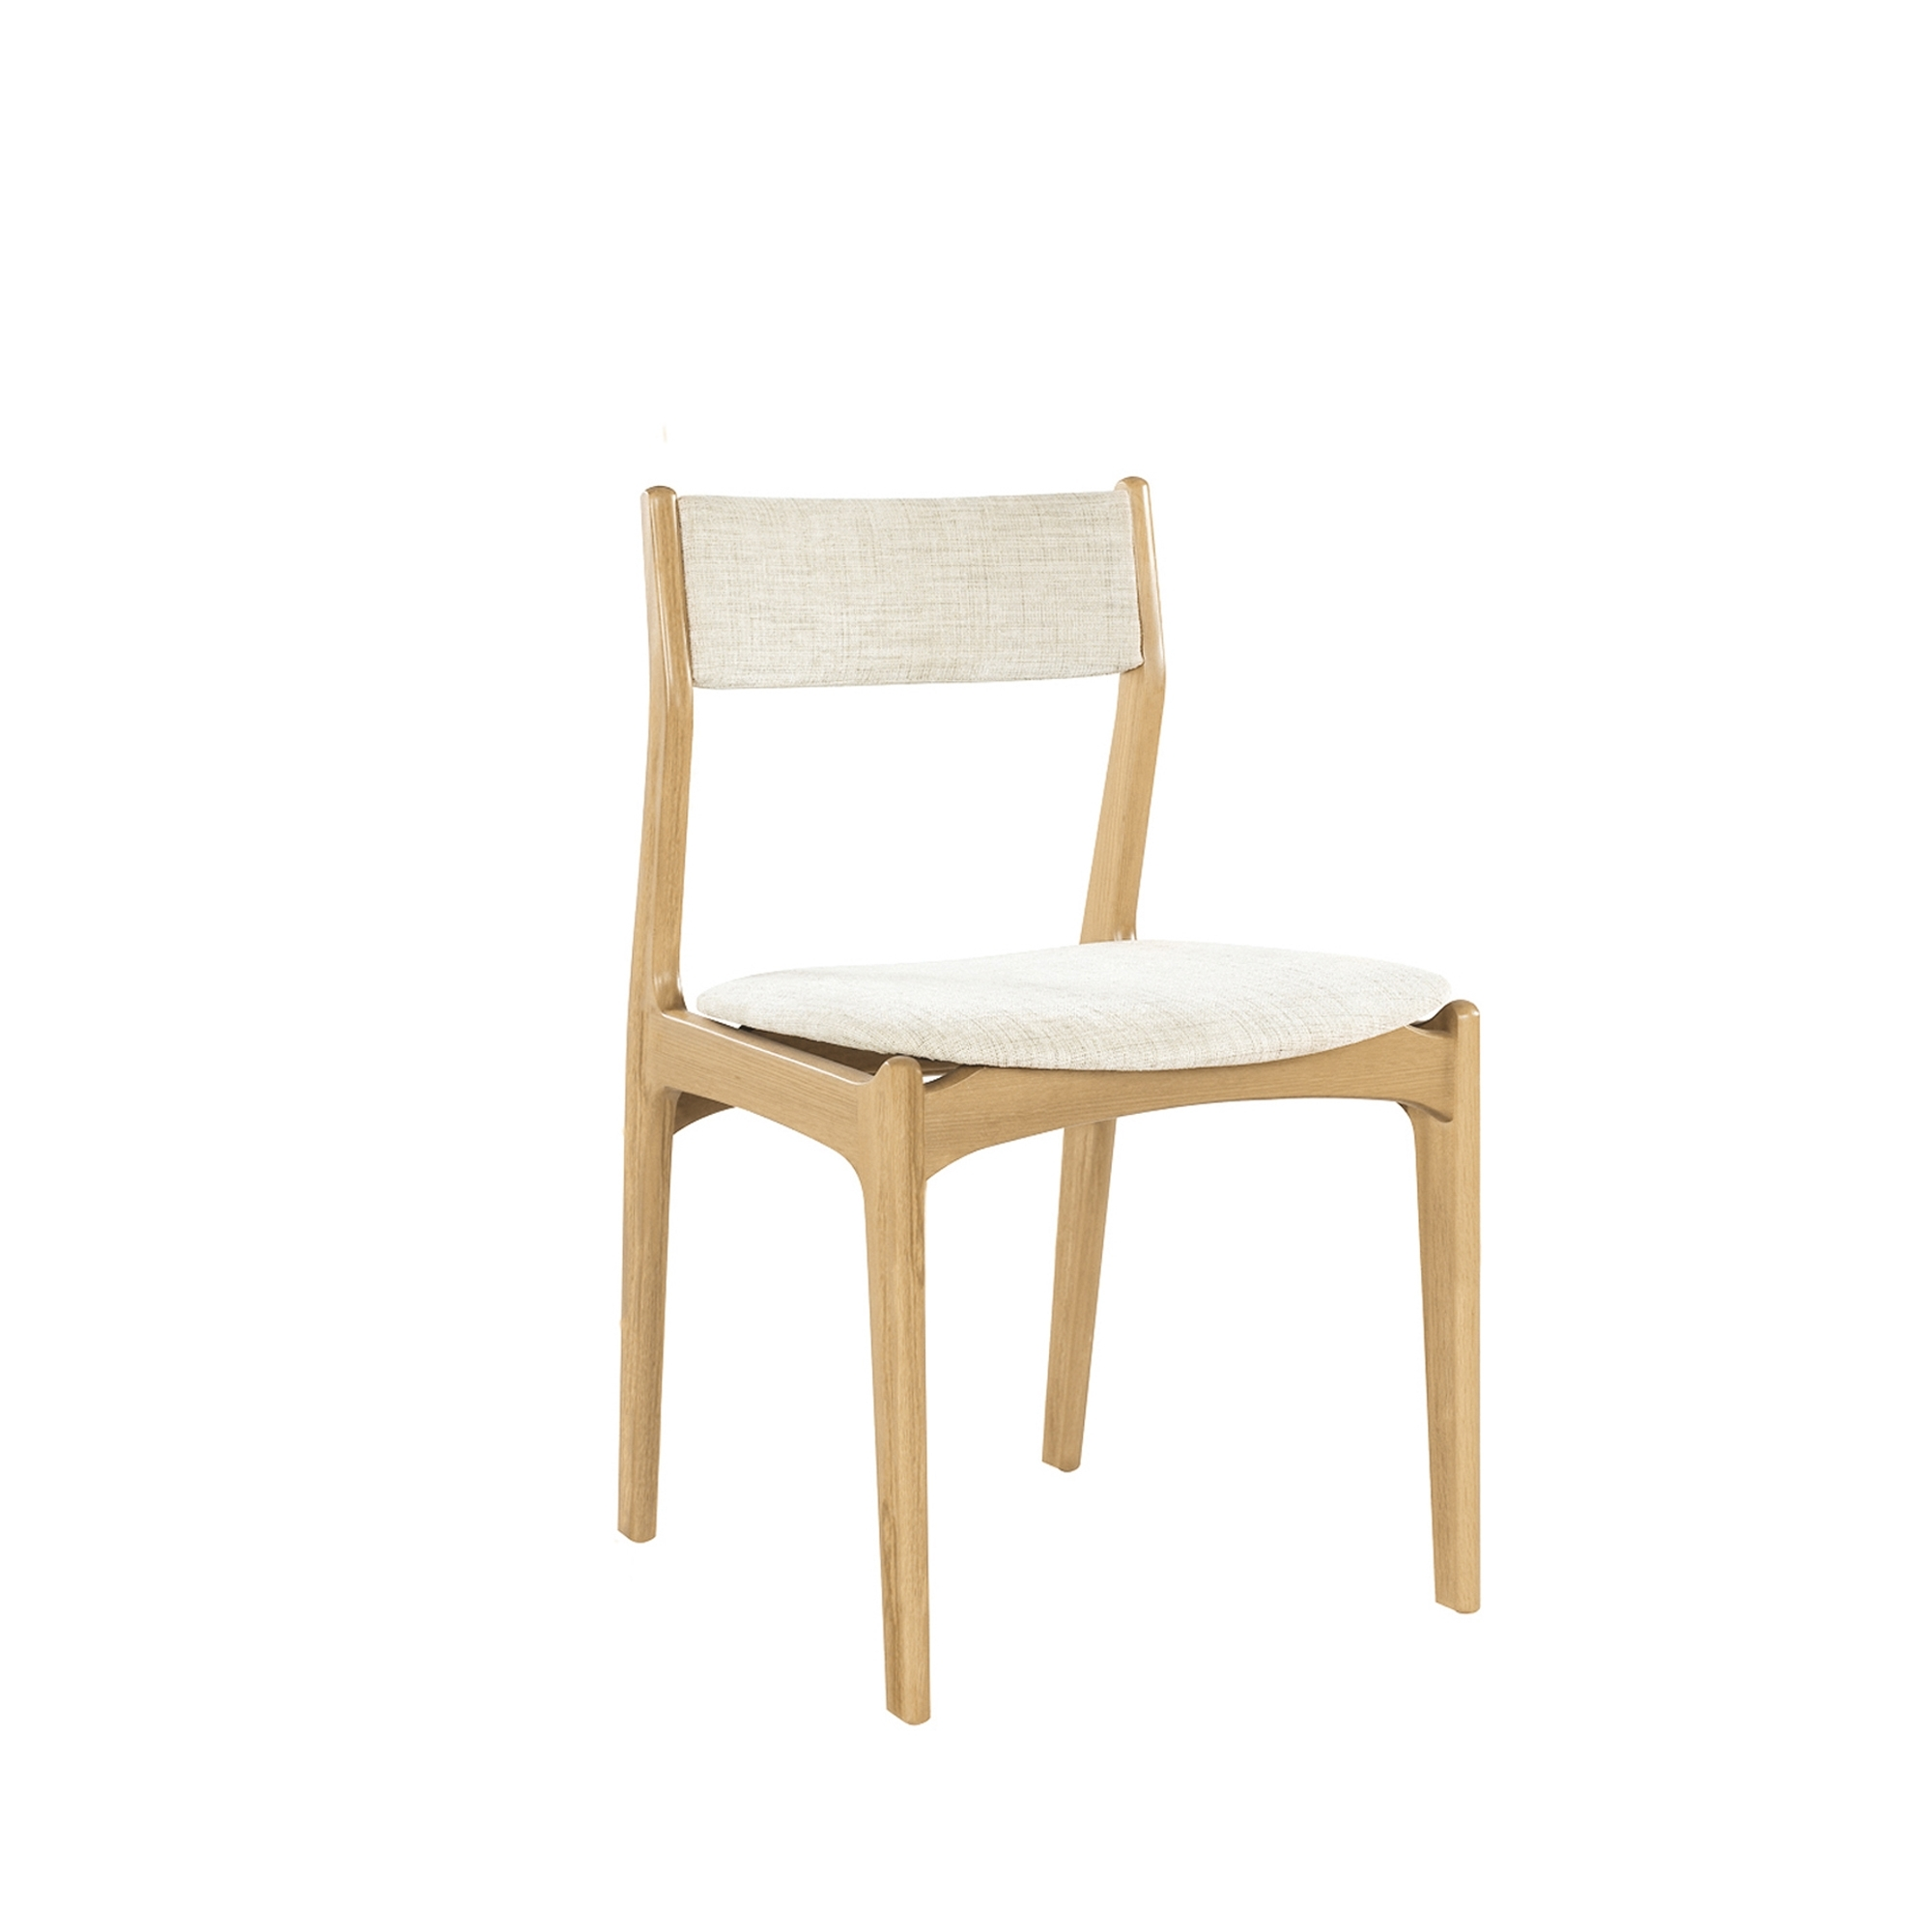 chairs chair scandinavian oak of set straw for at pamono sale